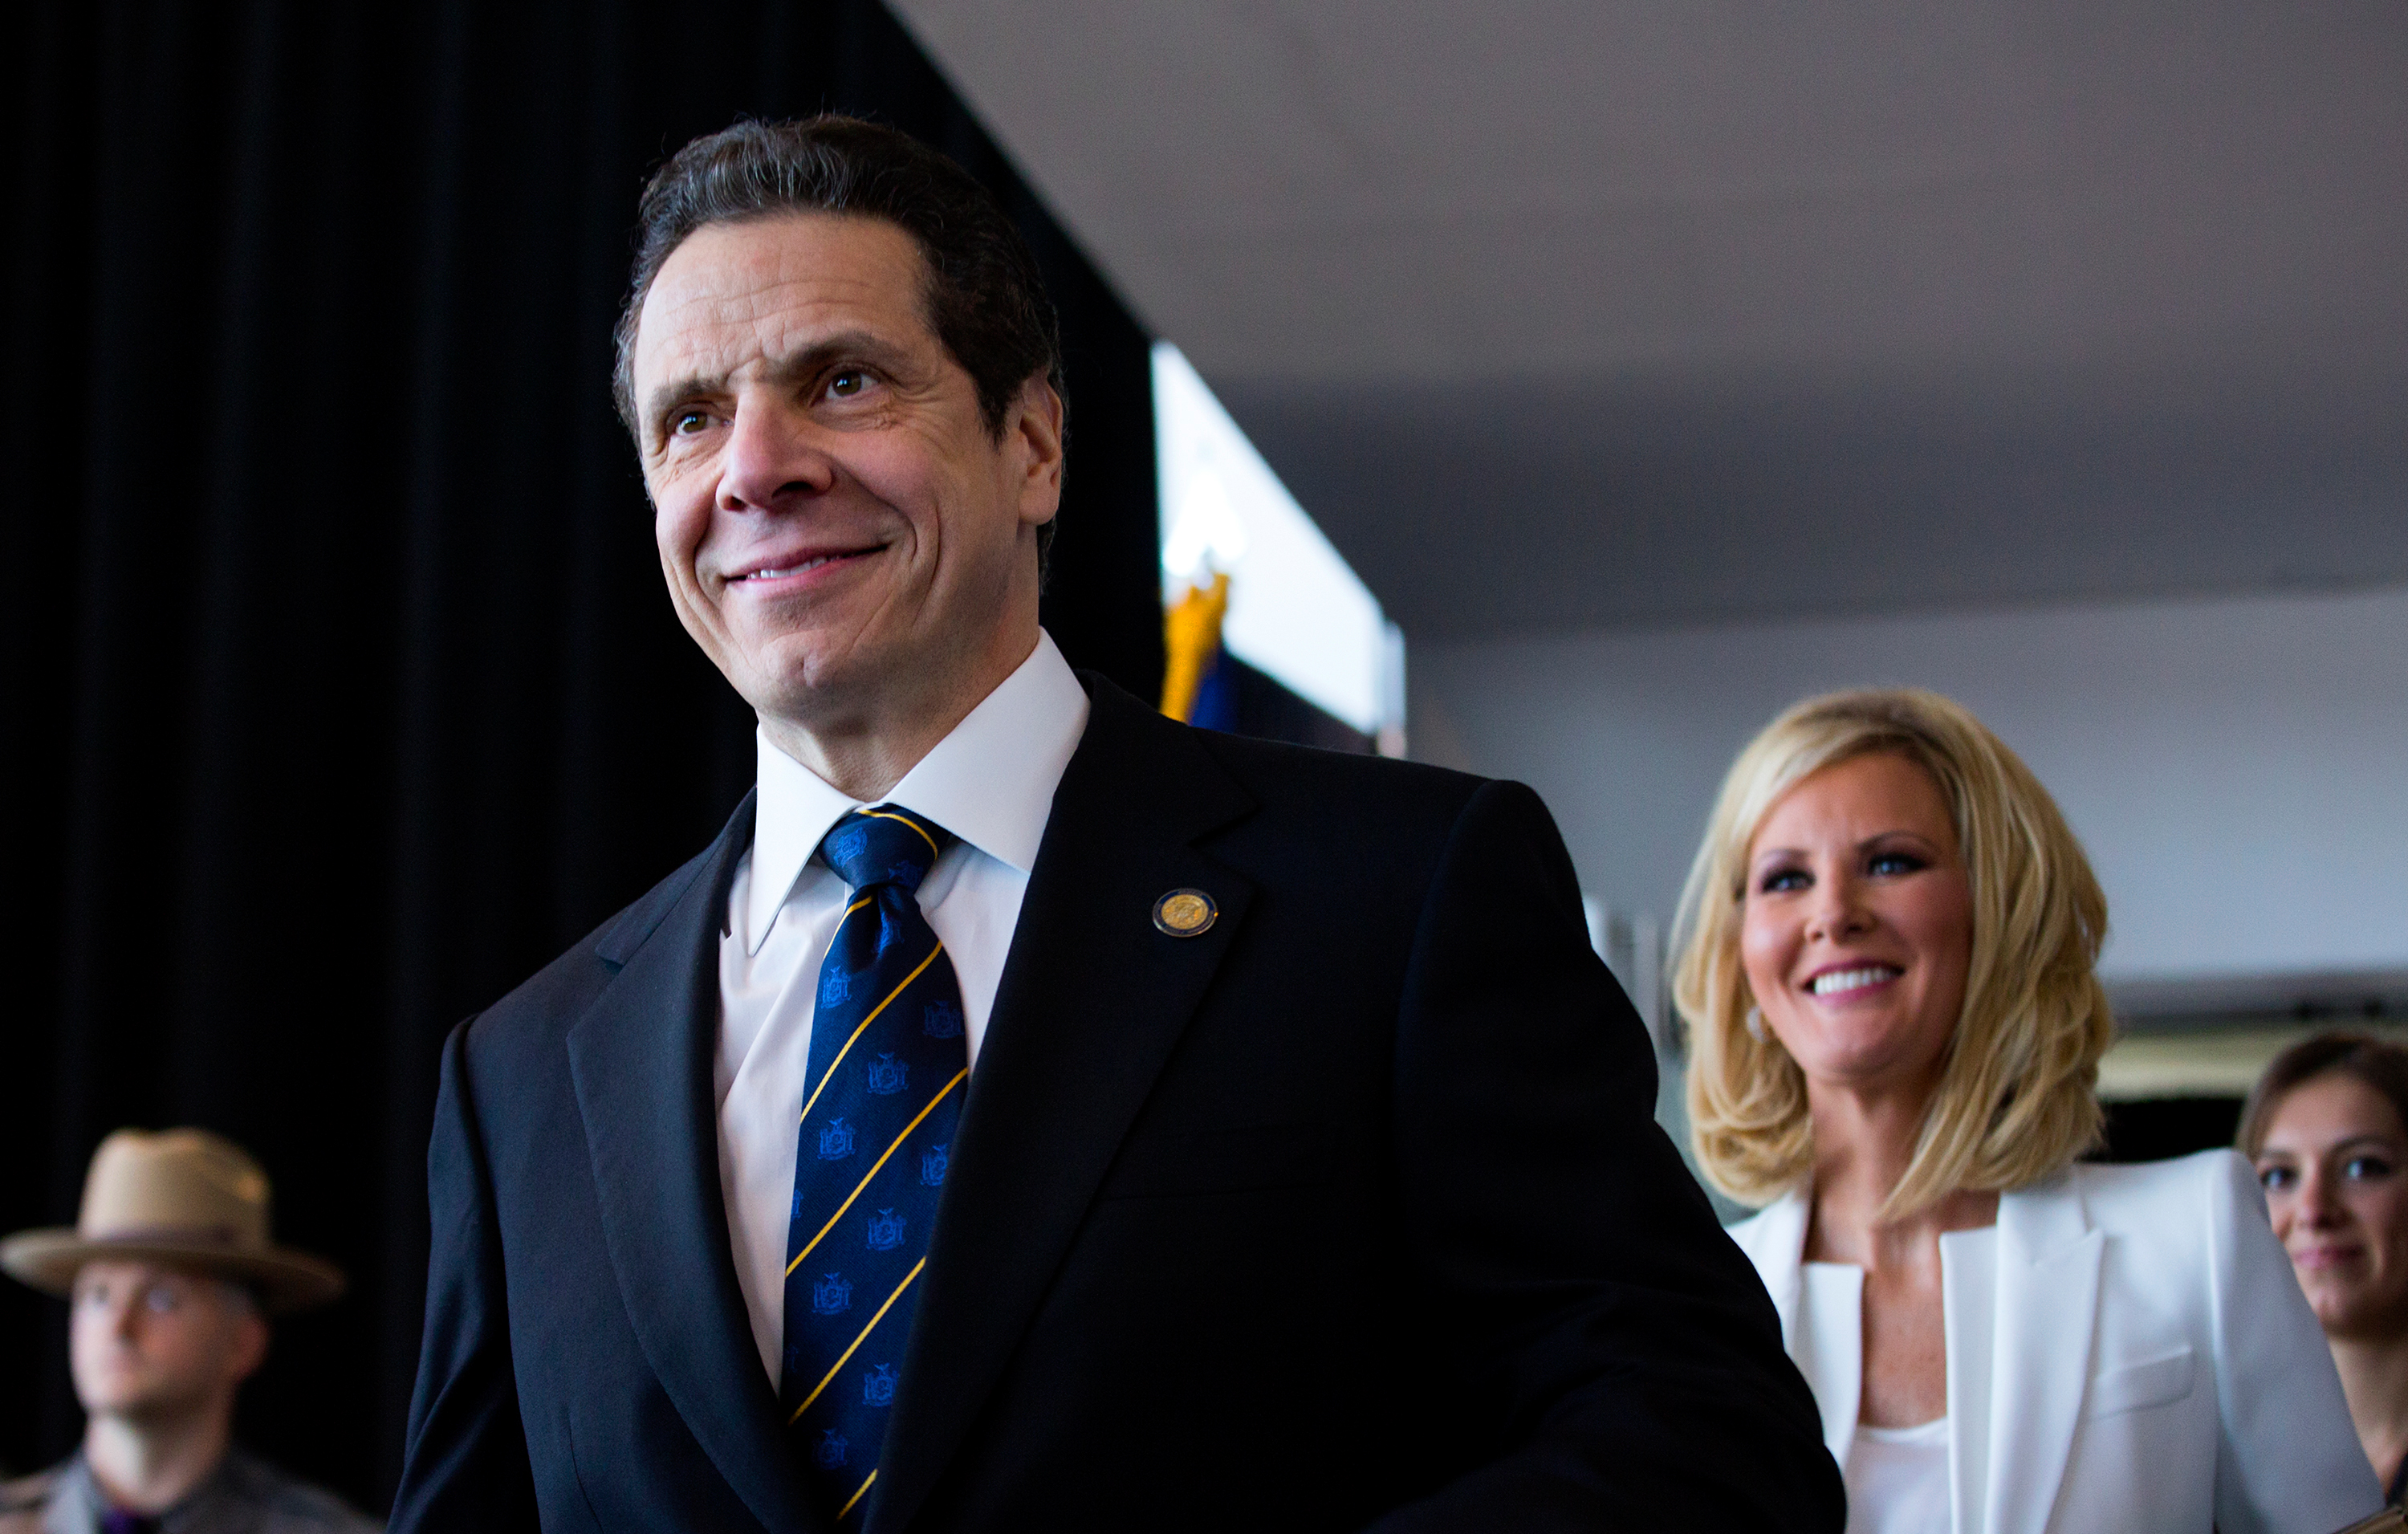 New York Governor Andrew Cuomo arrives for his inaugural ceremony at One World Trade Center in New York on Jan. 1, 2015.